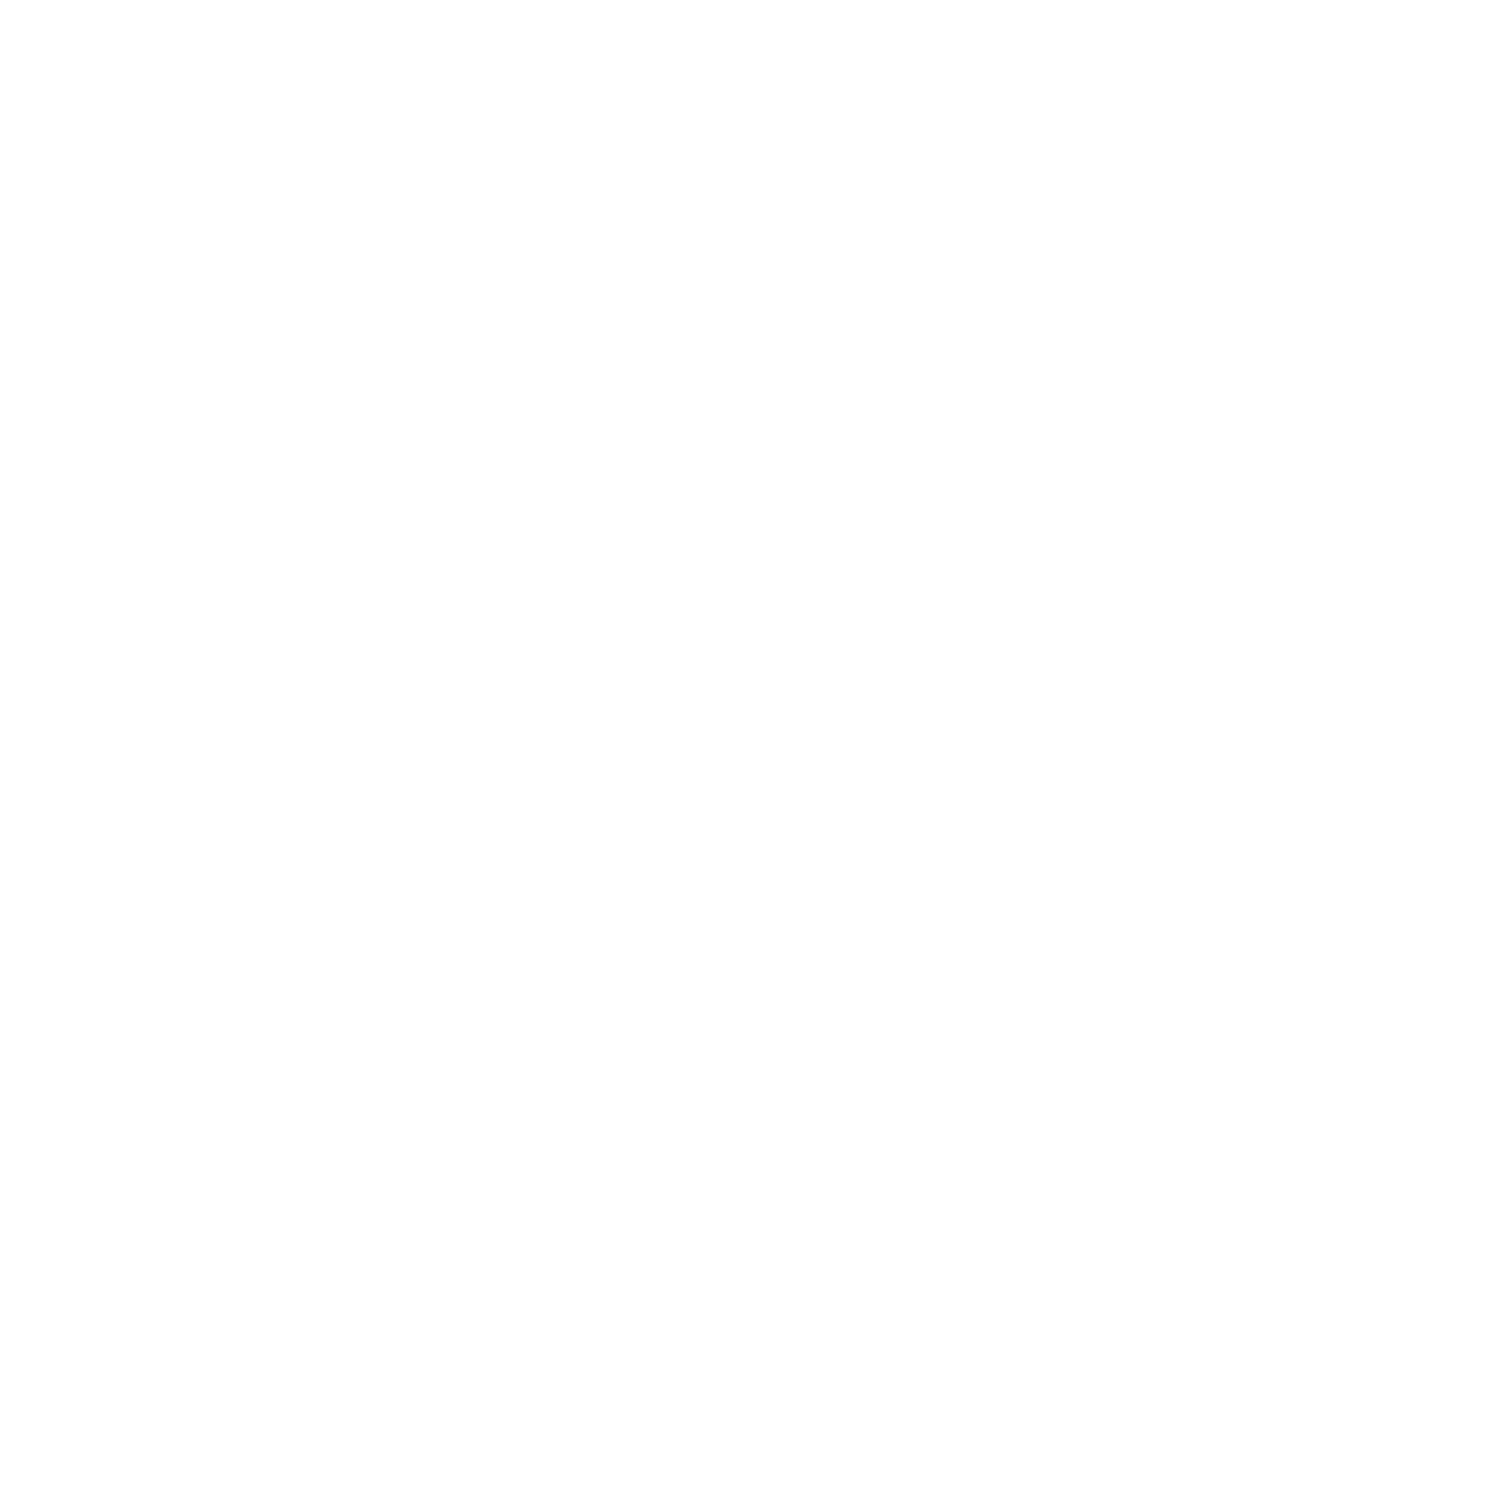 British Podcast Awards powered by DAX